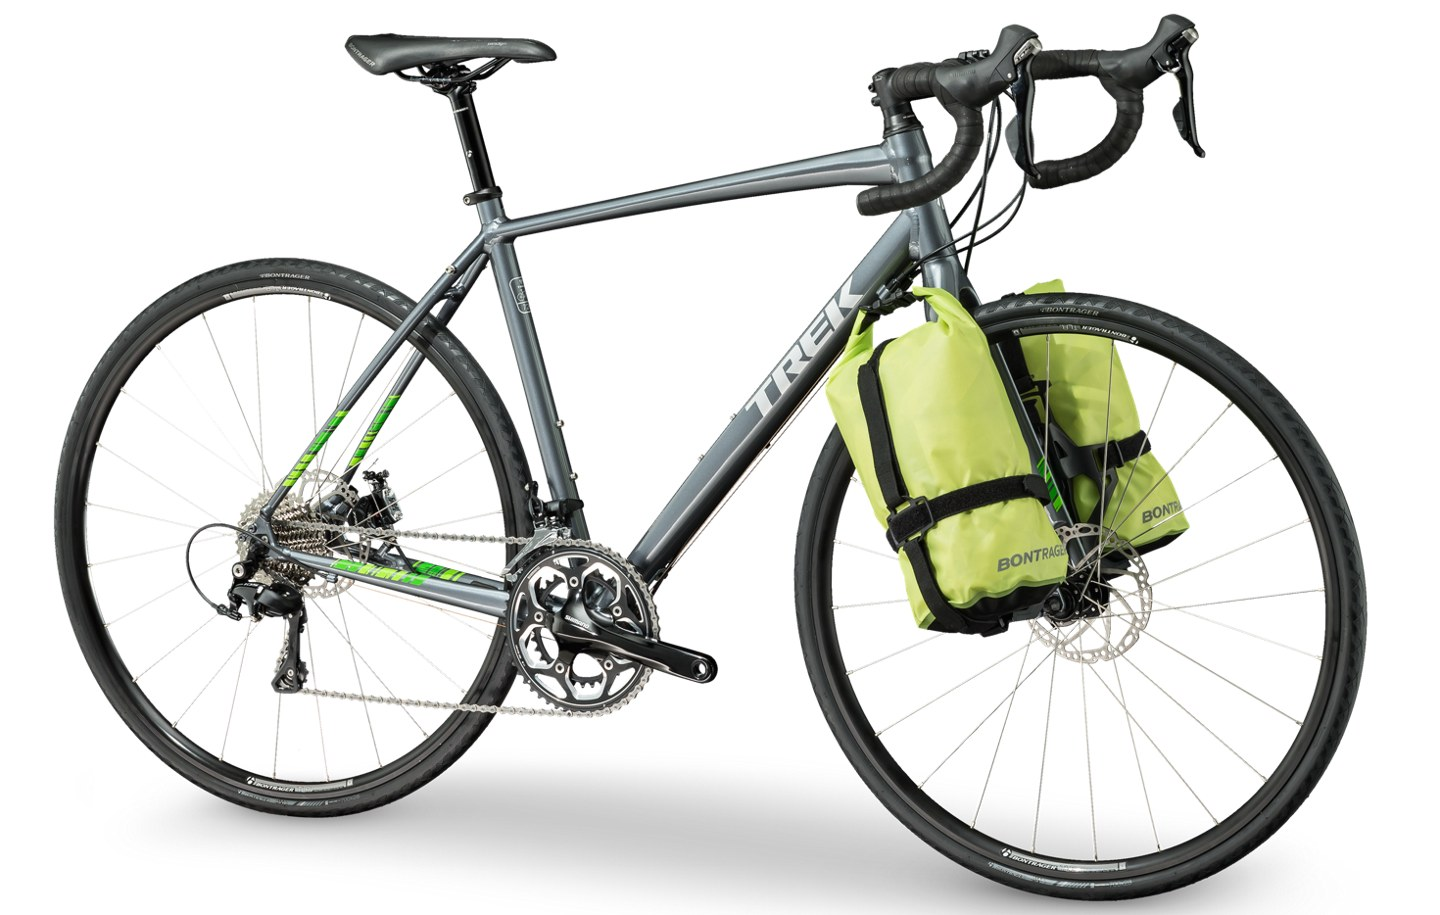 The New 2016 Trek 920 720 520 And Crossrip Touring Bikes